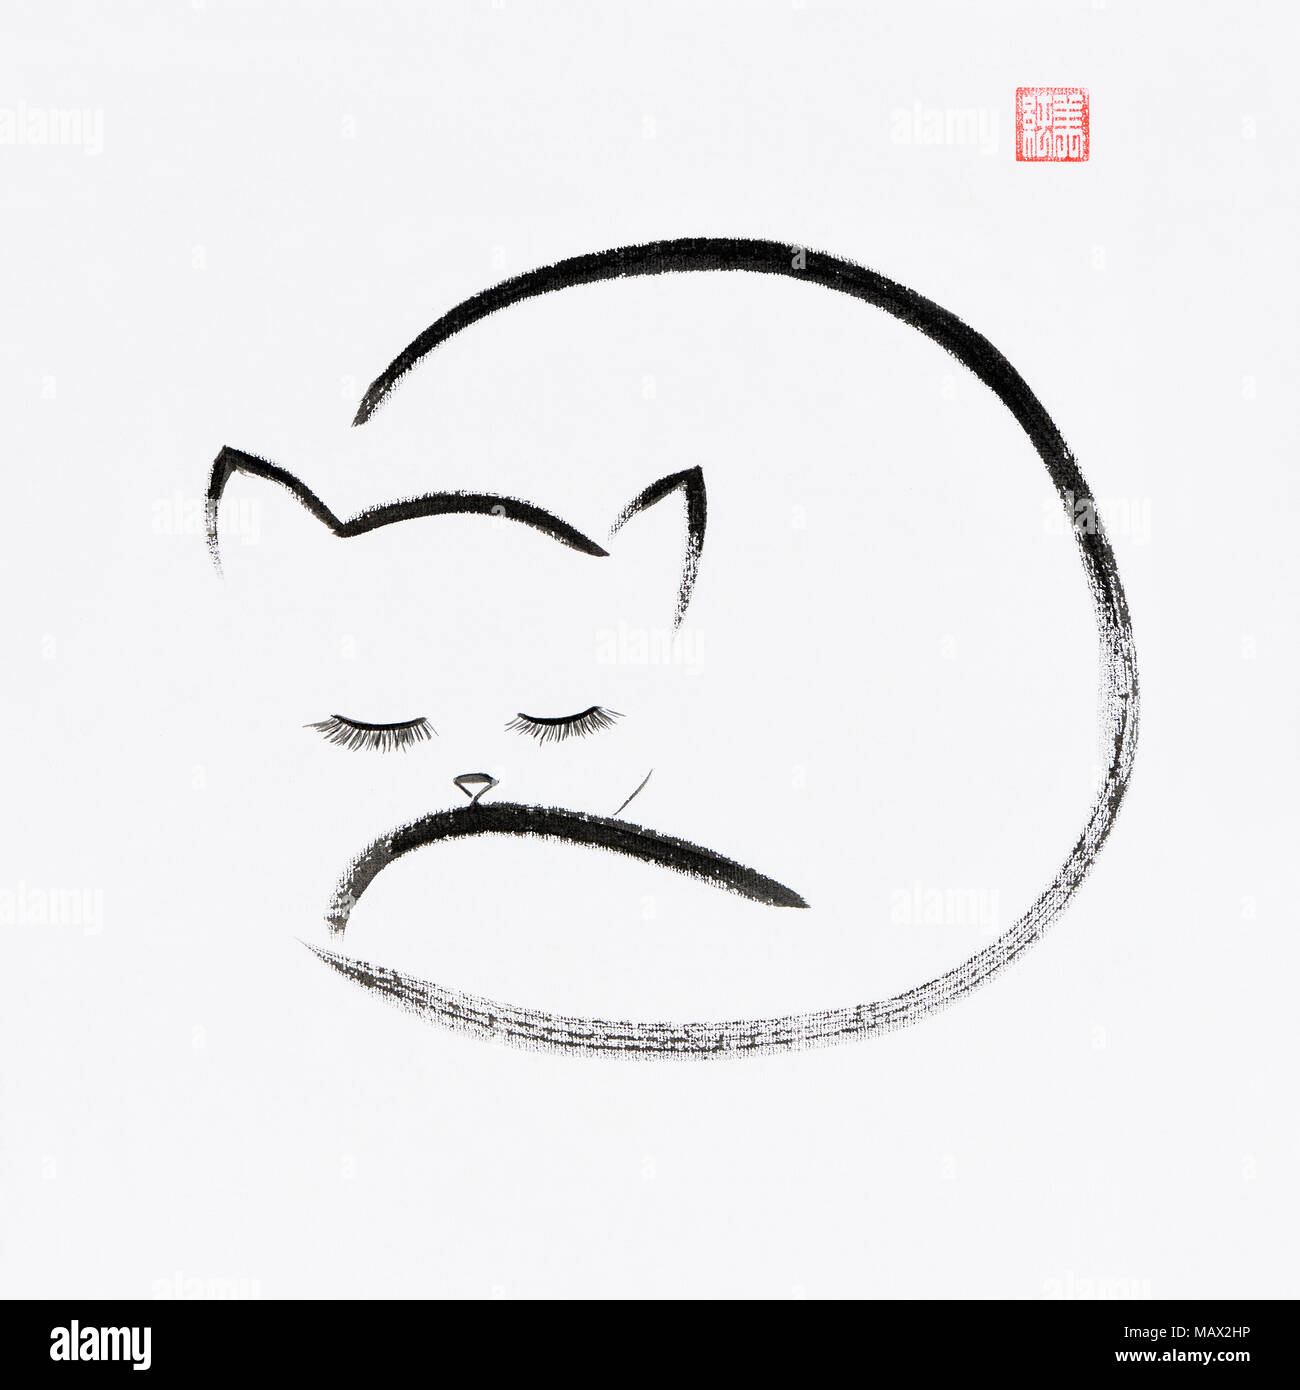 Cute snuggly sleeping cat artistic oriental style illustration, Japanese Zen Sumi-e ink painting on white rice paper background - Stock Image